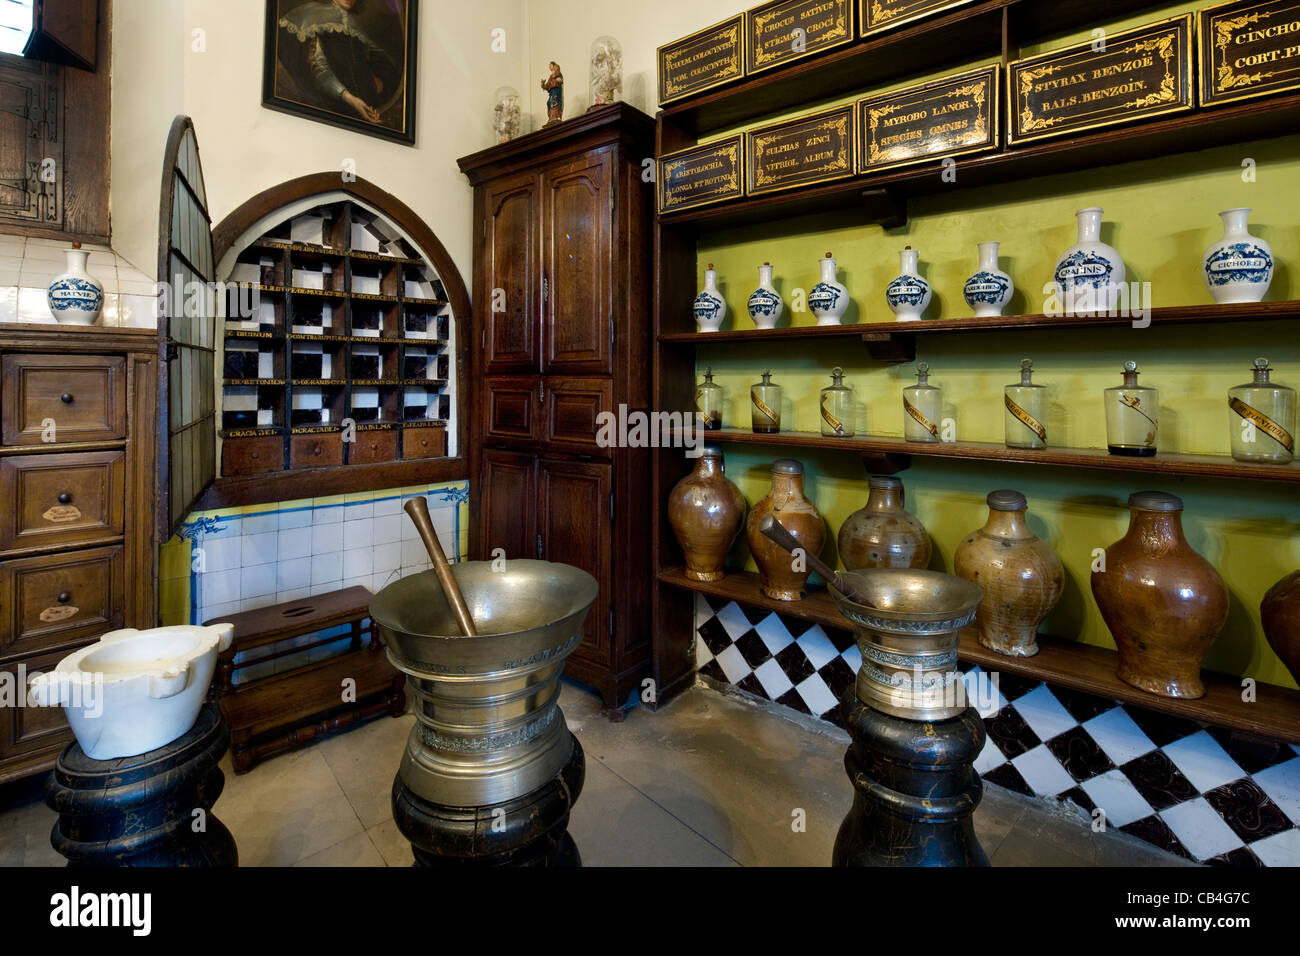 Jars and pitchers on shelves in pharmacy in the old Saint John's Hospital museum in Bruges, Belgium - Stock Image